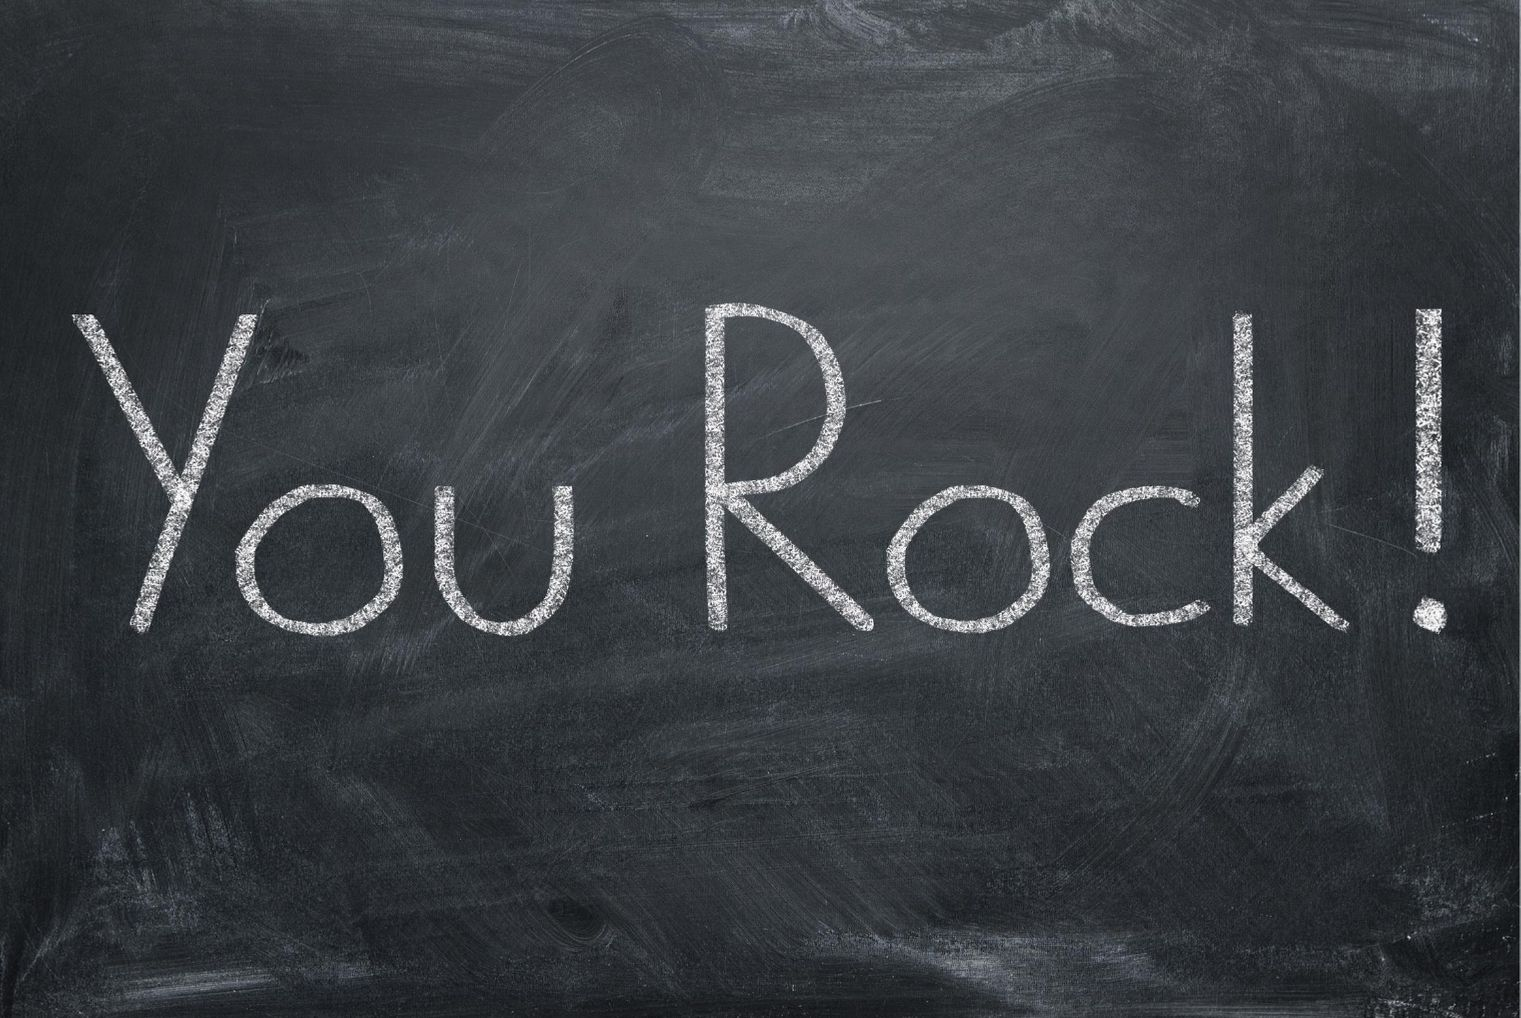 You rock written on blackboard. Love languages.